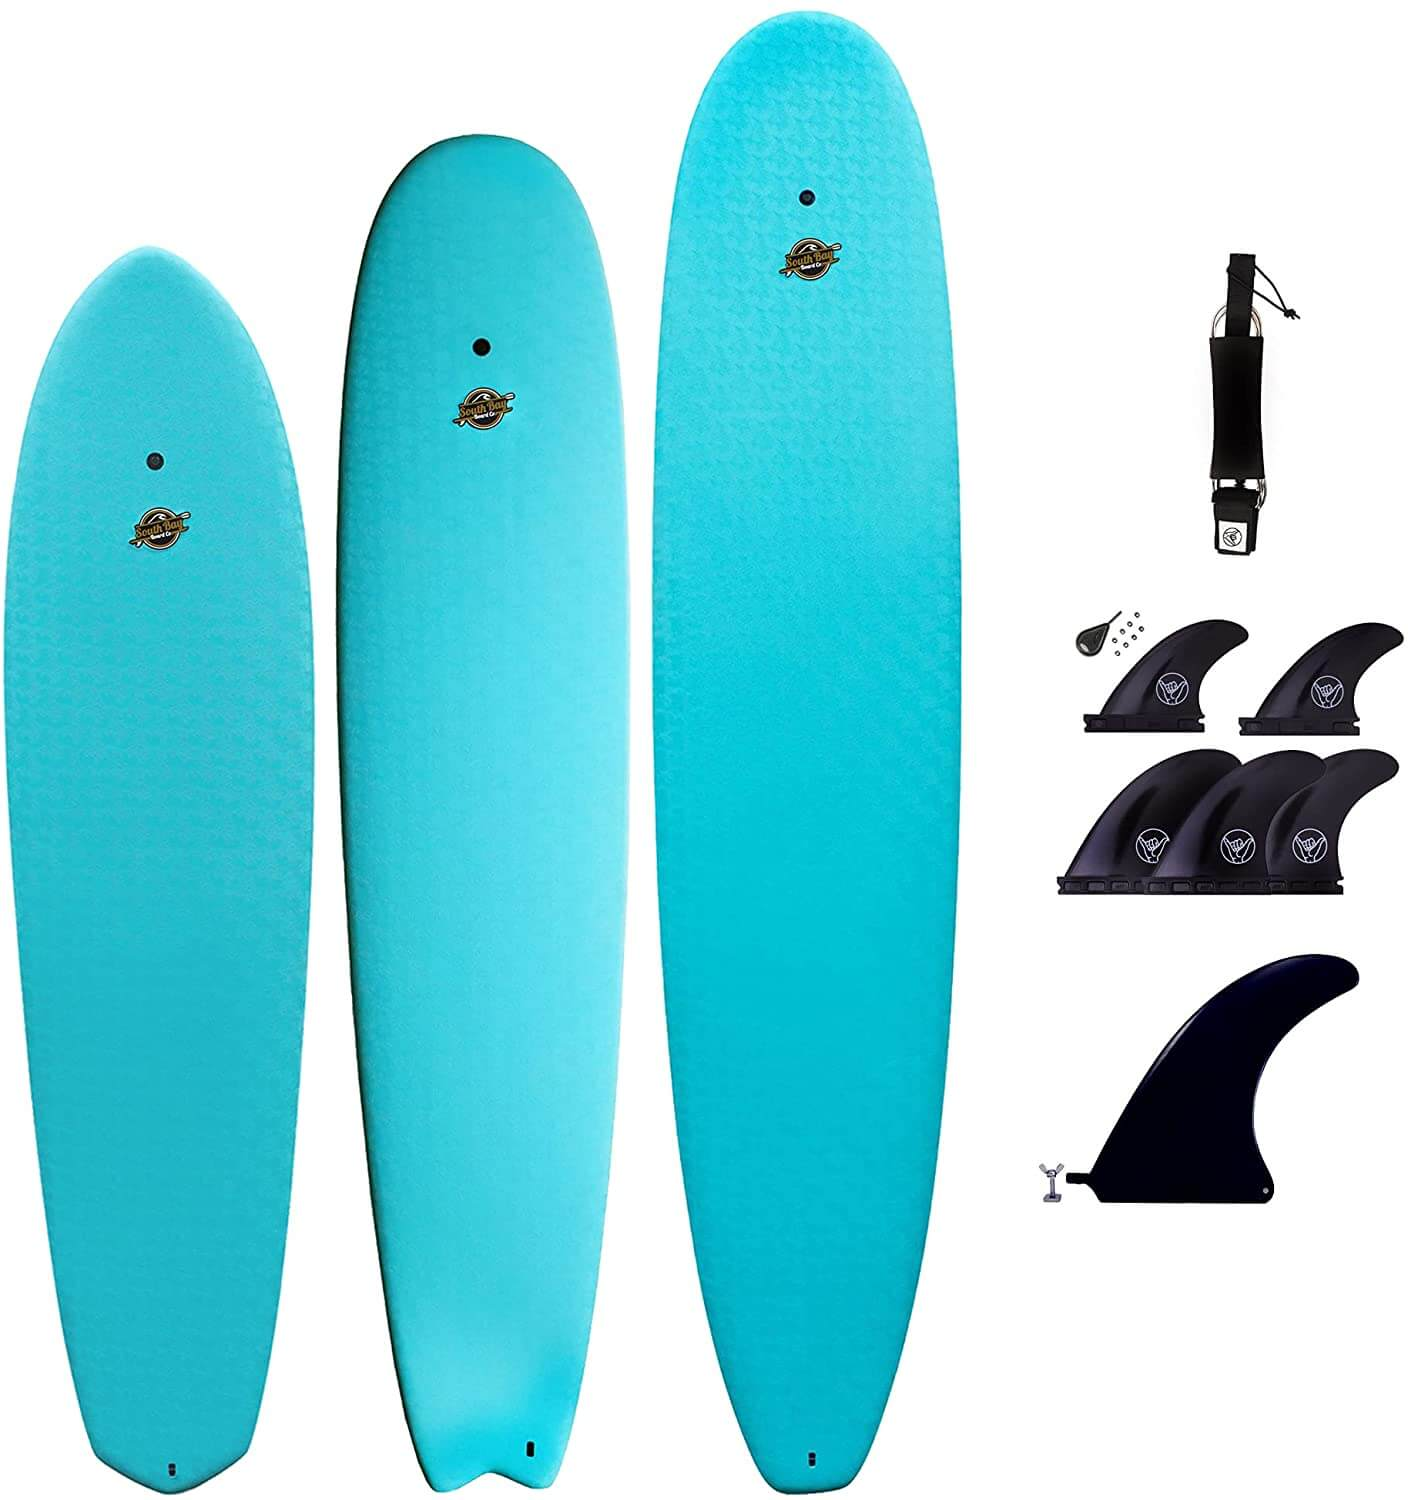 3 surfboards with accessories